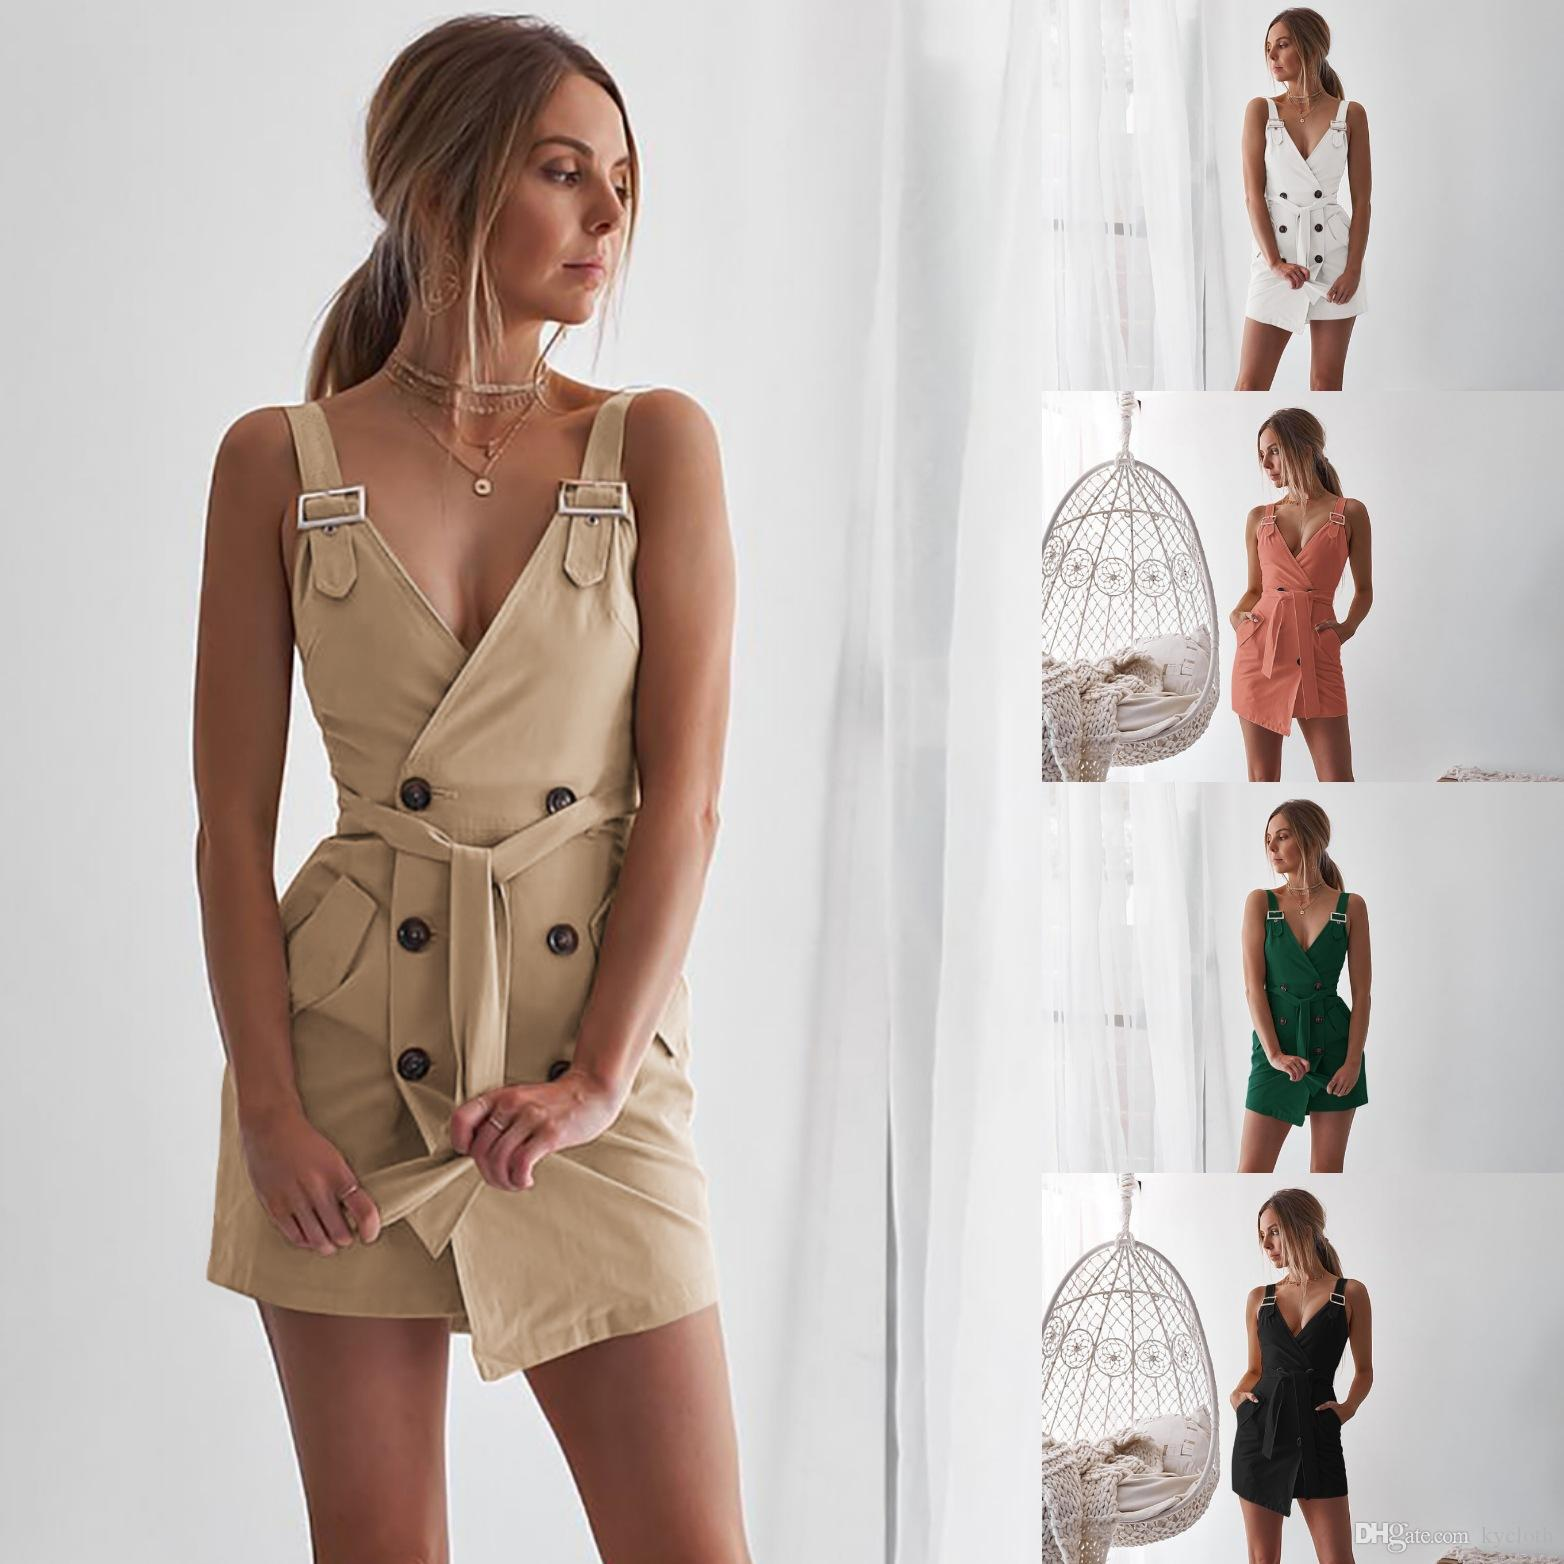 Women's Clothing Long Blouse Dress Sexy Irregulate High Waist Dress With Belt Fashion Elegant Dress Vintage Party Khaki Dresses Korean 2019